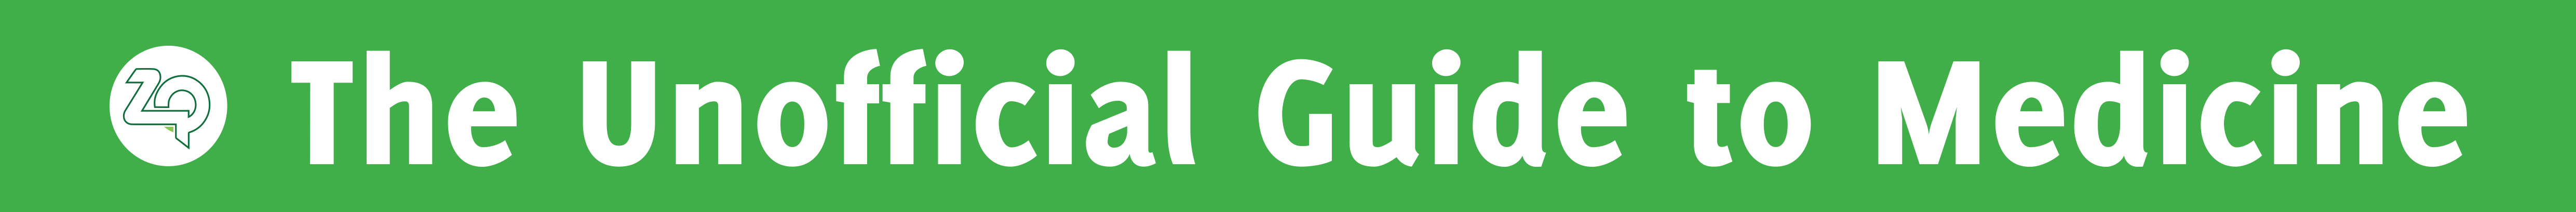 ugtm-logo-whiteongreen-42cm